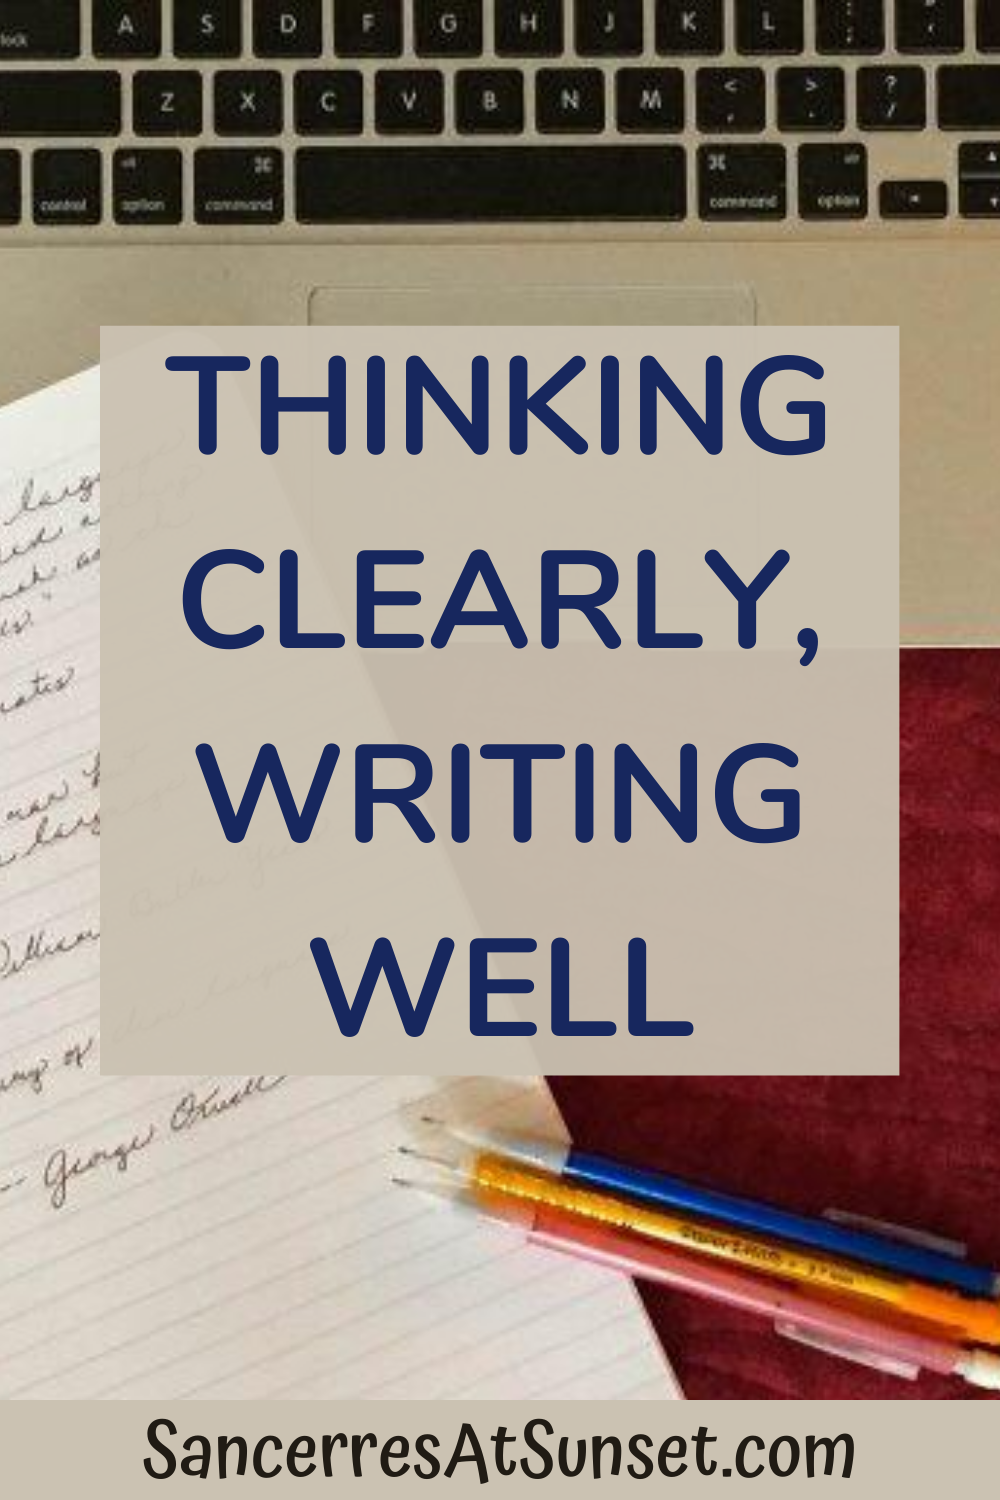 Thinking Clearly, Writing Well